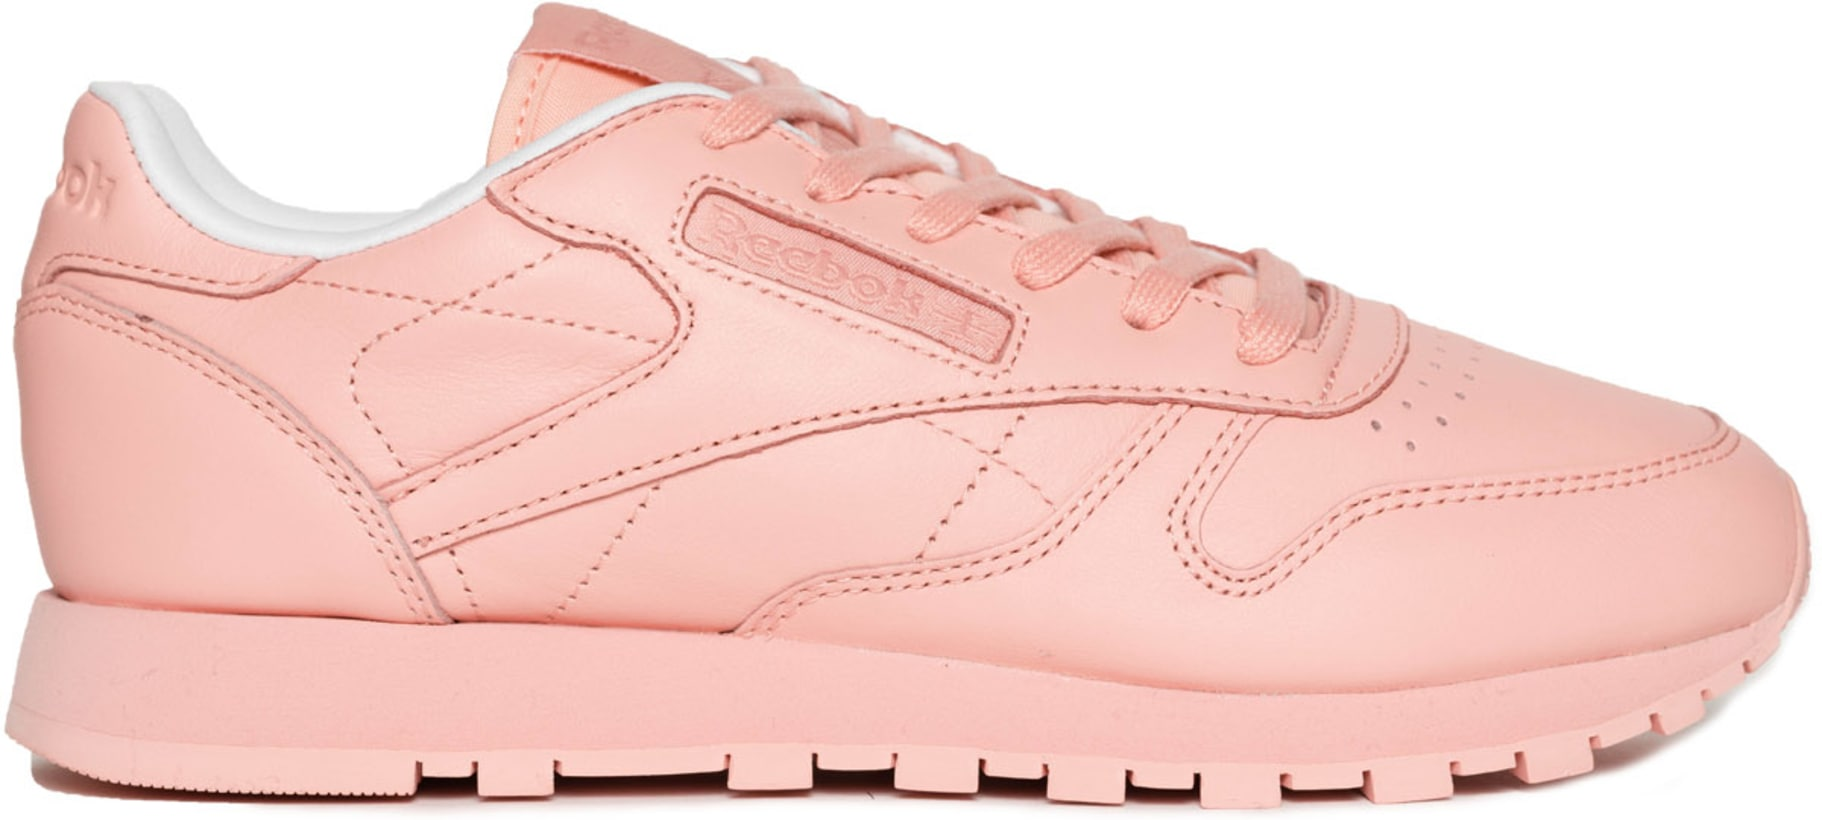 new style 5d90e ca14f Reebok - Classic Leather Pastels - Patina Pink/White